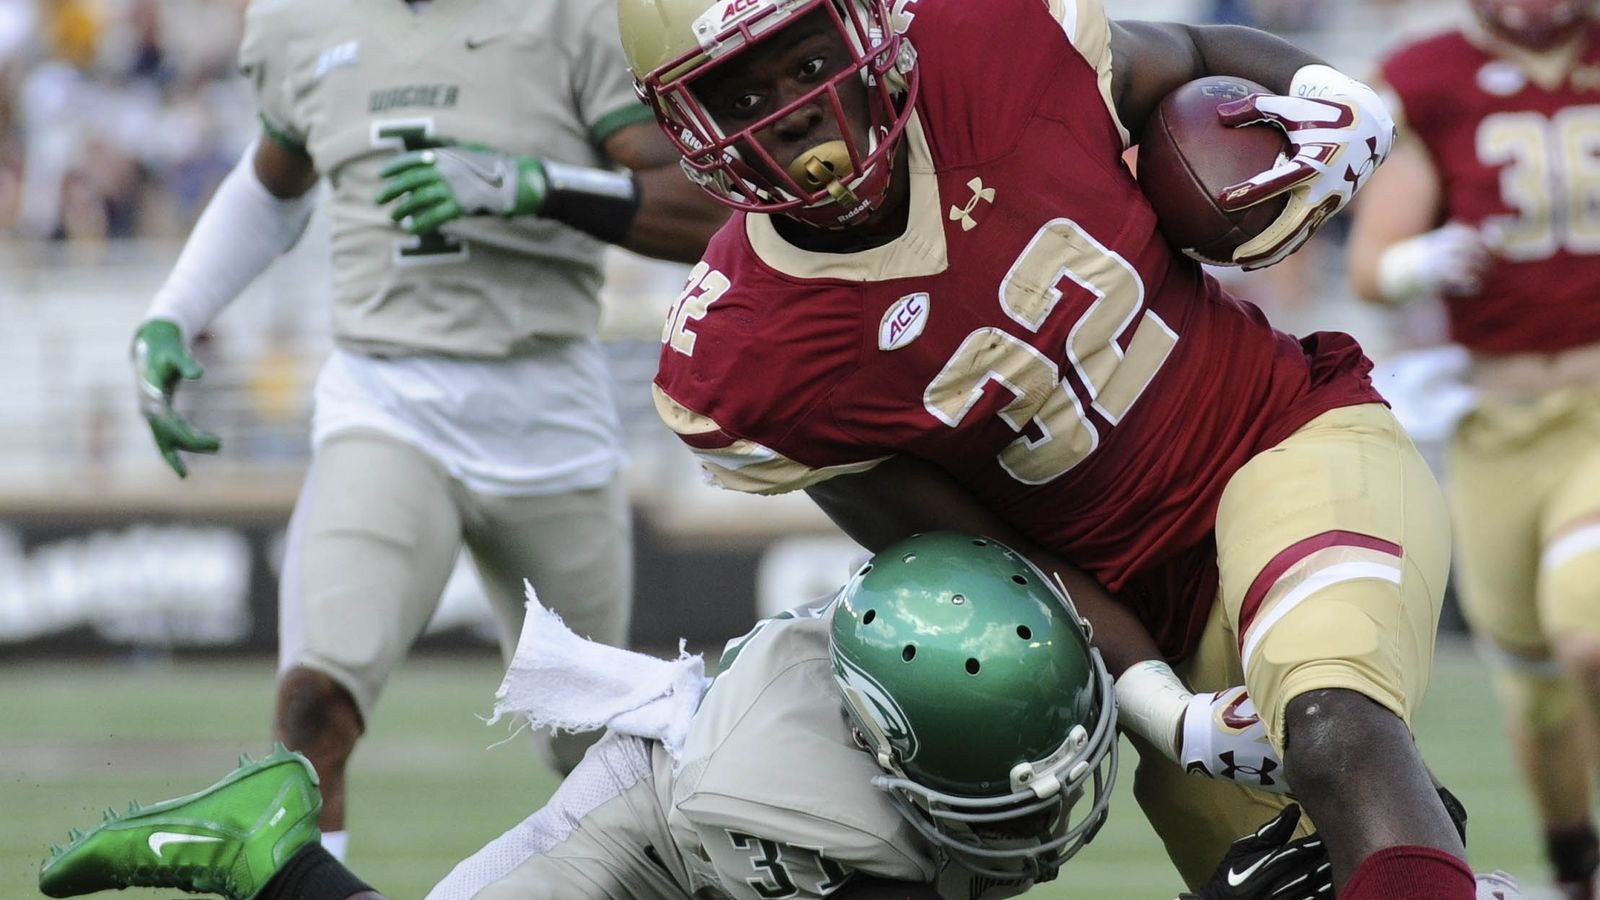 Get the latest Boston College Eagles news scores stats standings rumors and more from ESPN